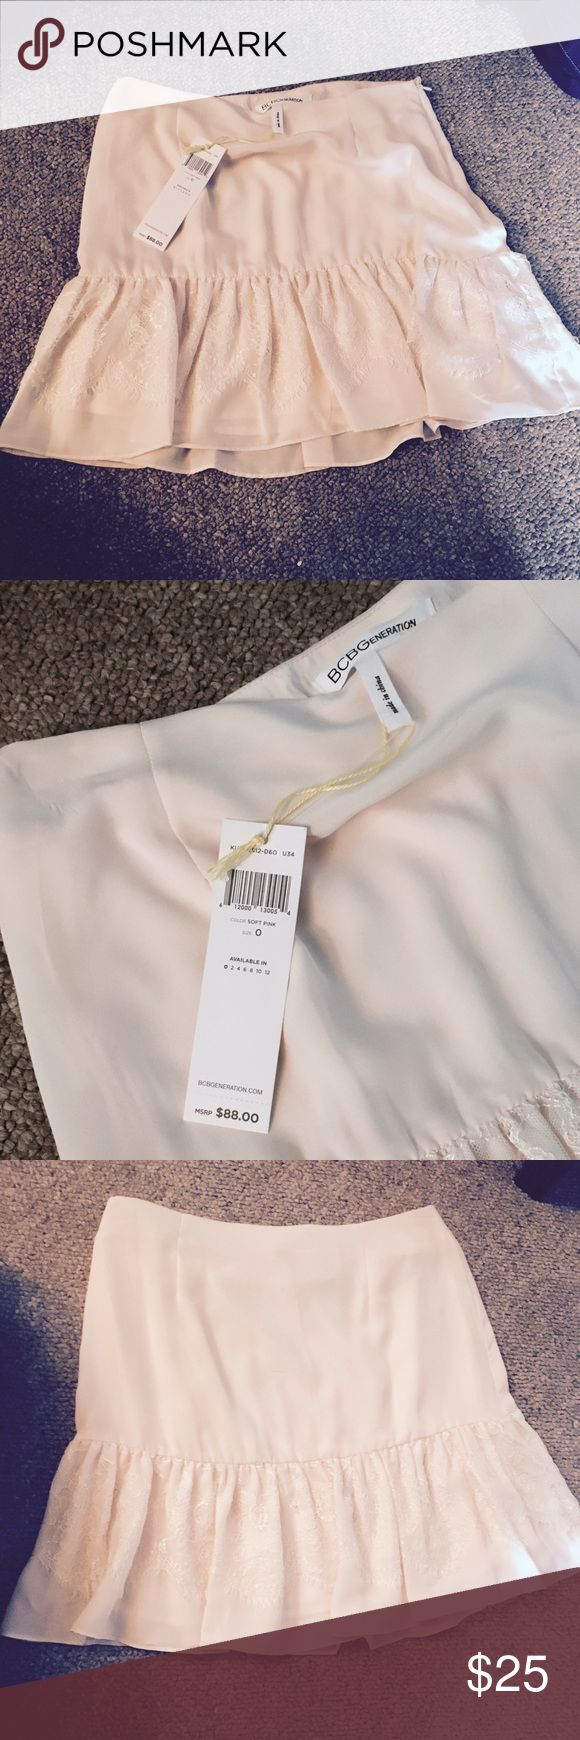 NWT Bcbgeneration blush skirt Brand new with tags never been worn. Really beautiful blush colored skirt with lace trim. It's a size 0. Runs true to size. It's about 15 inches long and hits mid to high waisted. BCBGeneration Skirts Mini